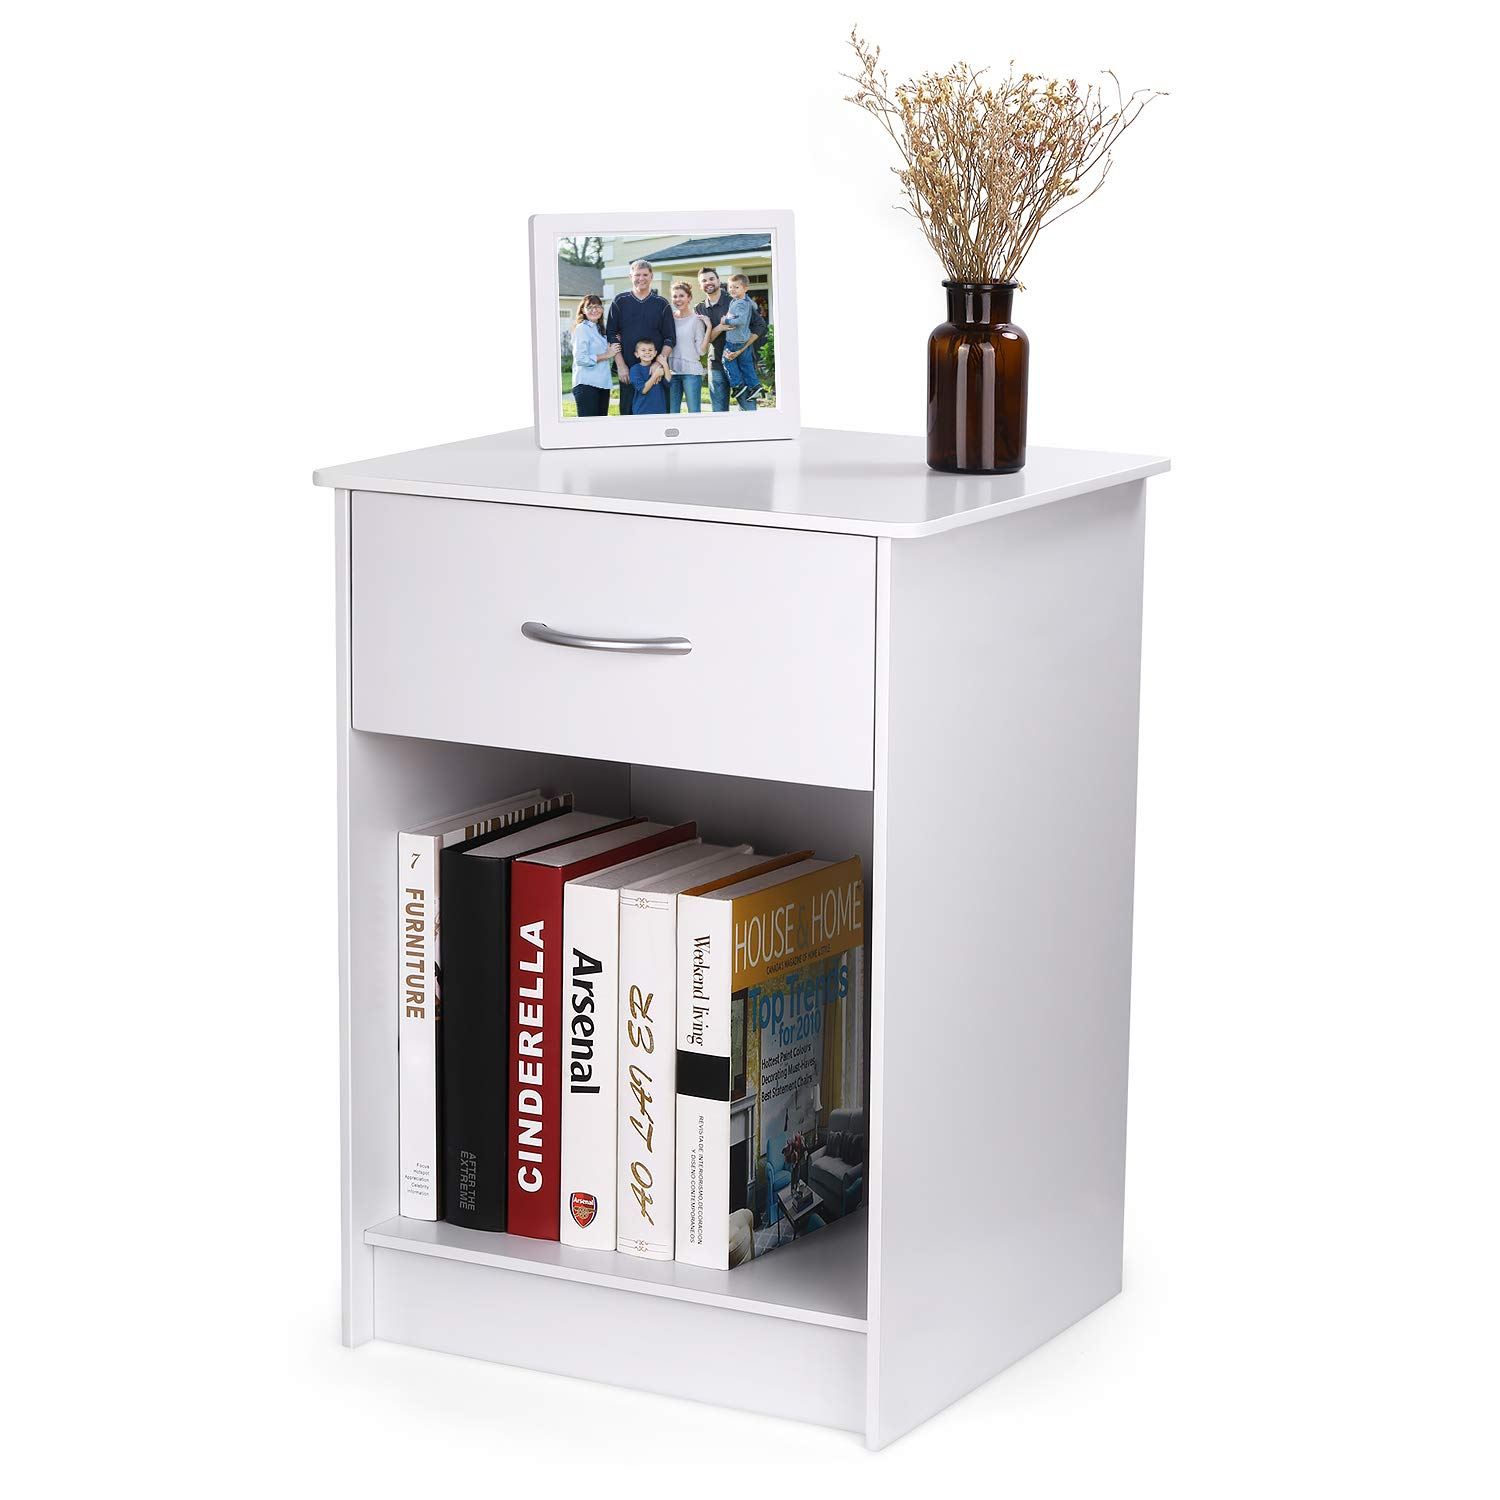 INTEY White Wood Nightstand with One Drawer and Open Cabinet Storage, Bedroom Modern Tall Nightstands Bedside End Table INTEY - US